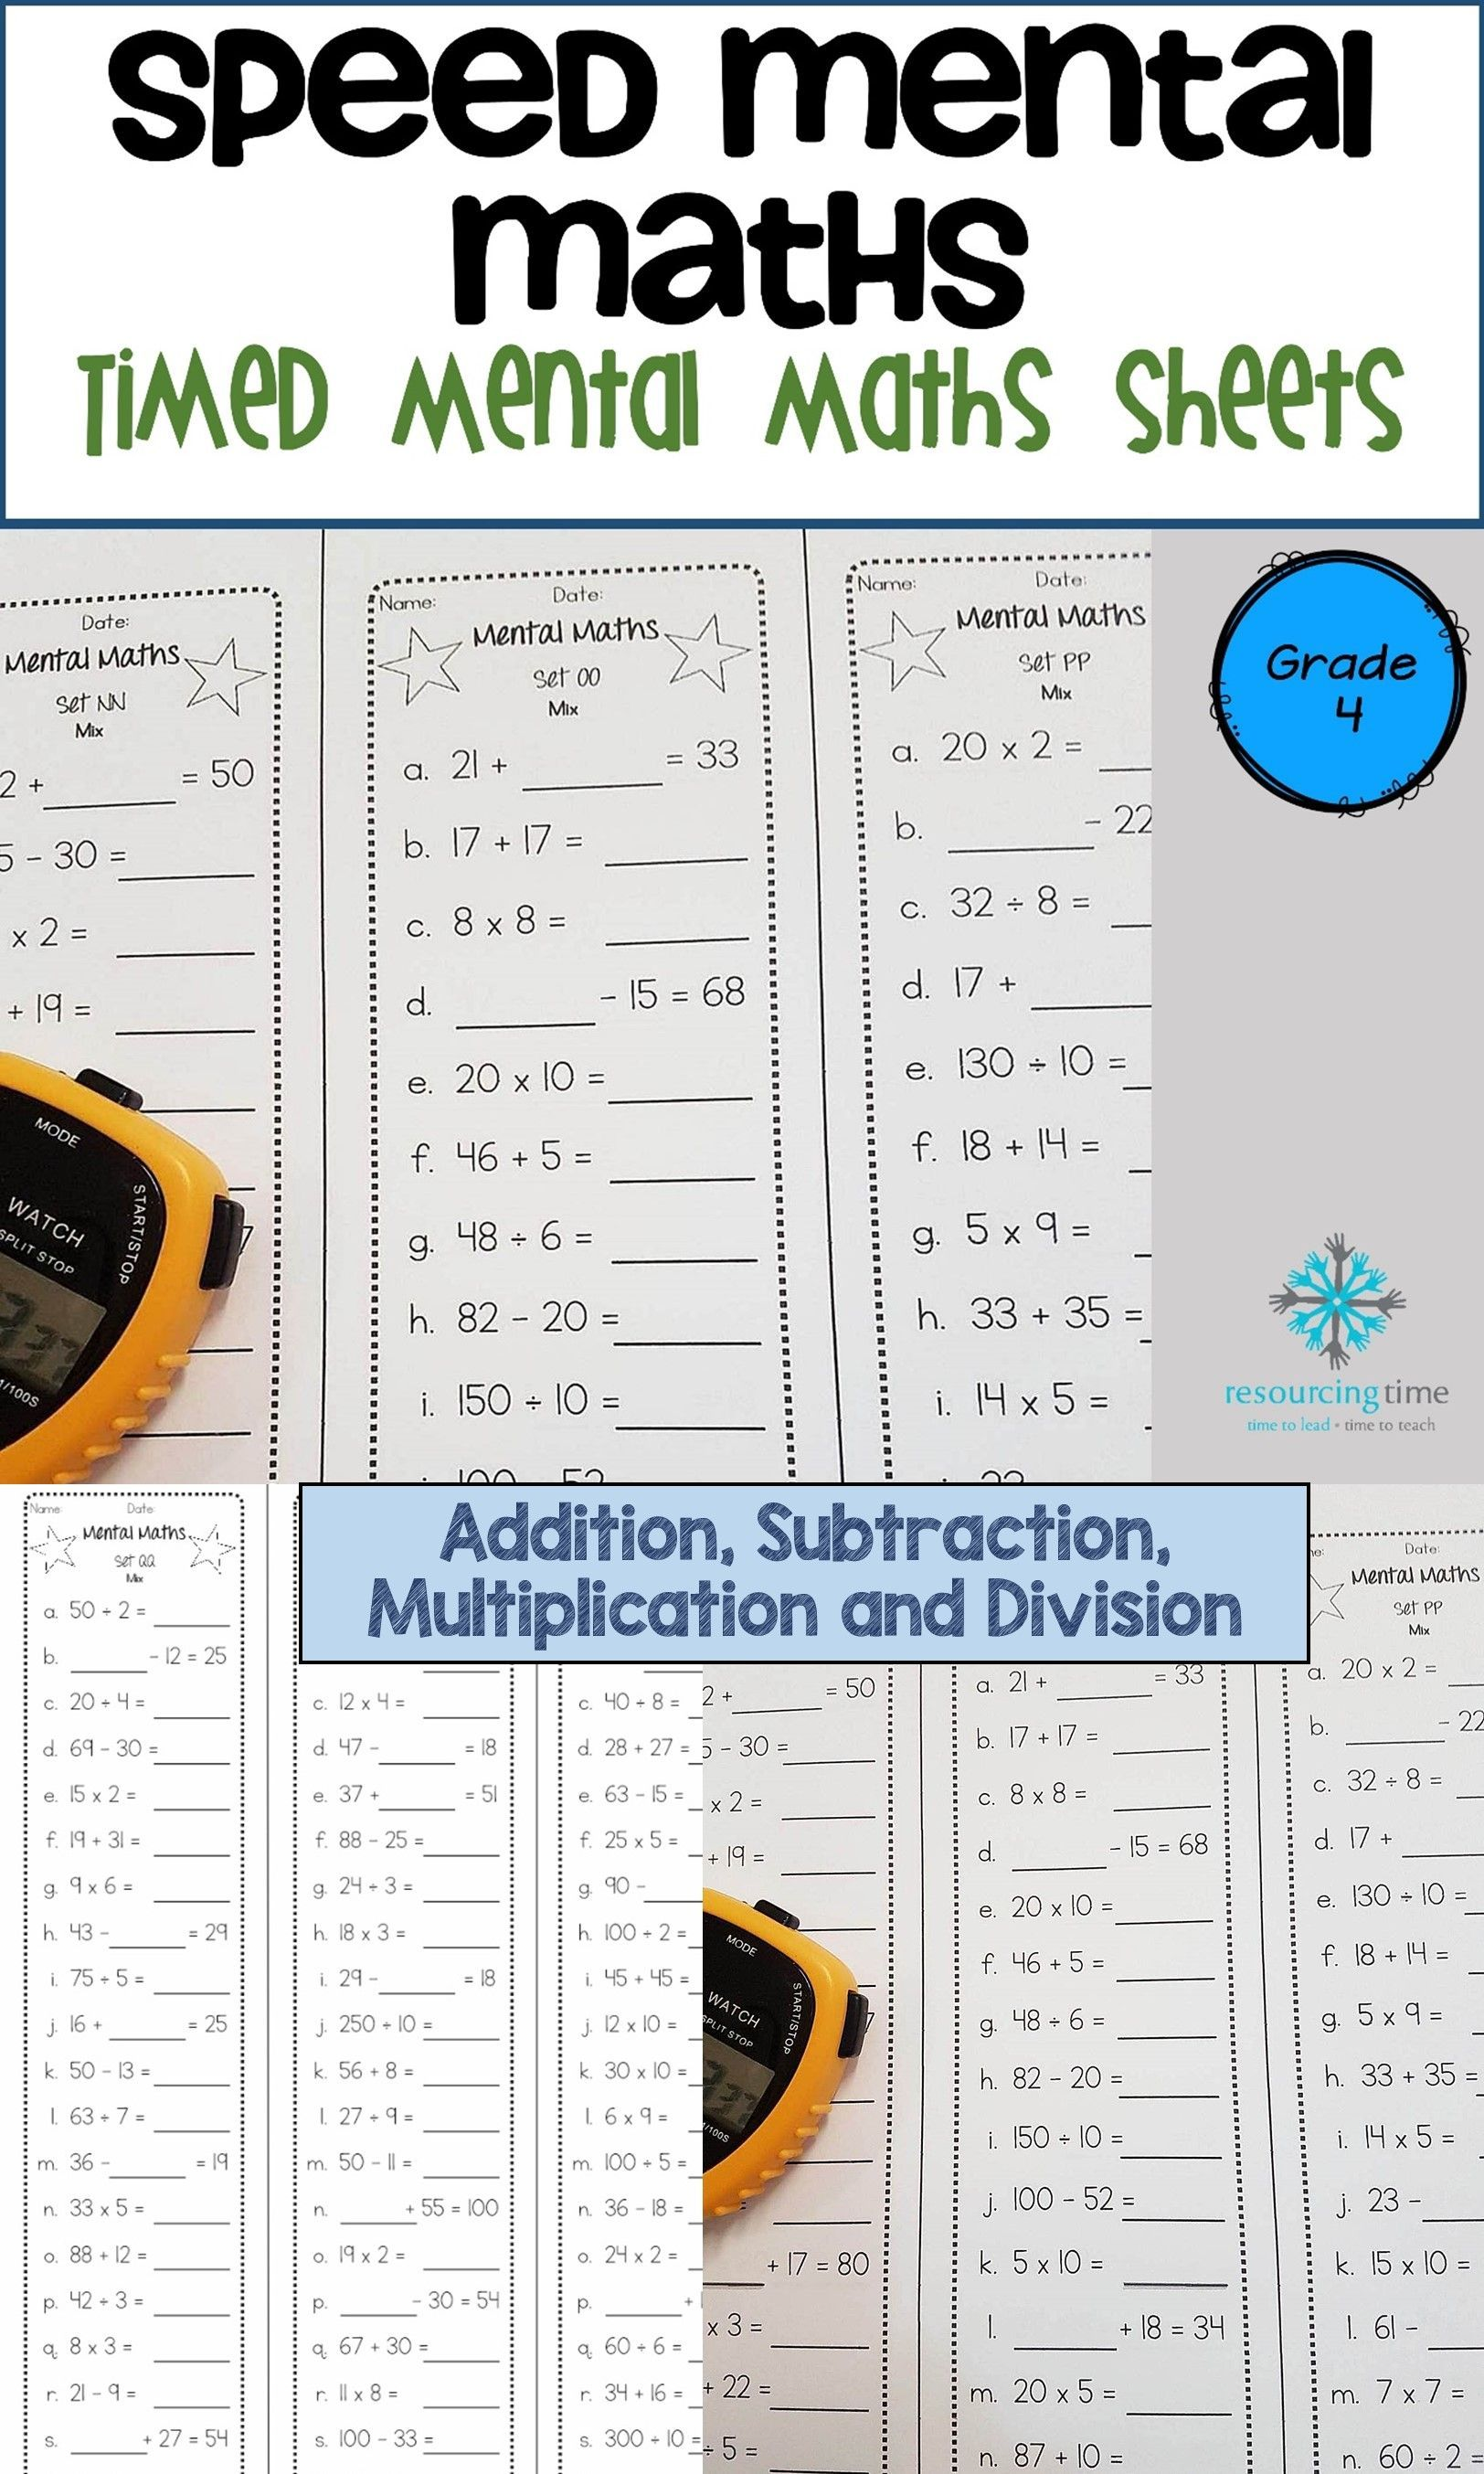 45 Mental Maths Sheets For Your Students To Increase Their Fluency And Accuracy With Addition Subtraction Multiplication And Divis Mental Math Math Prep Math Mental math addition activities